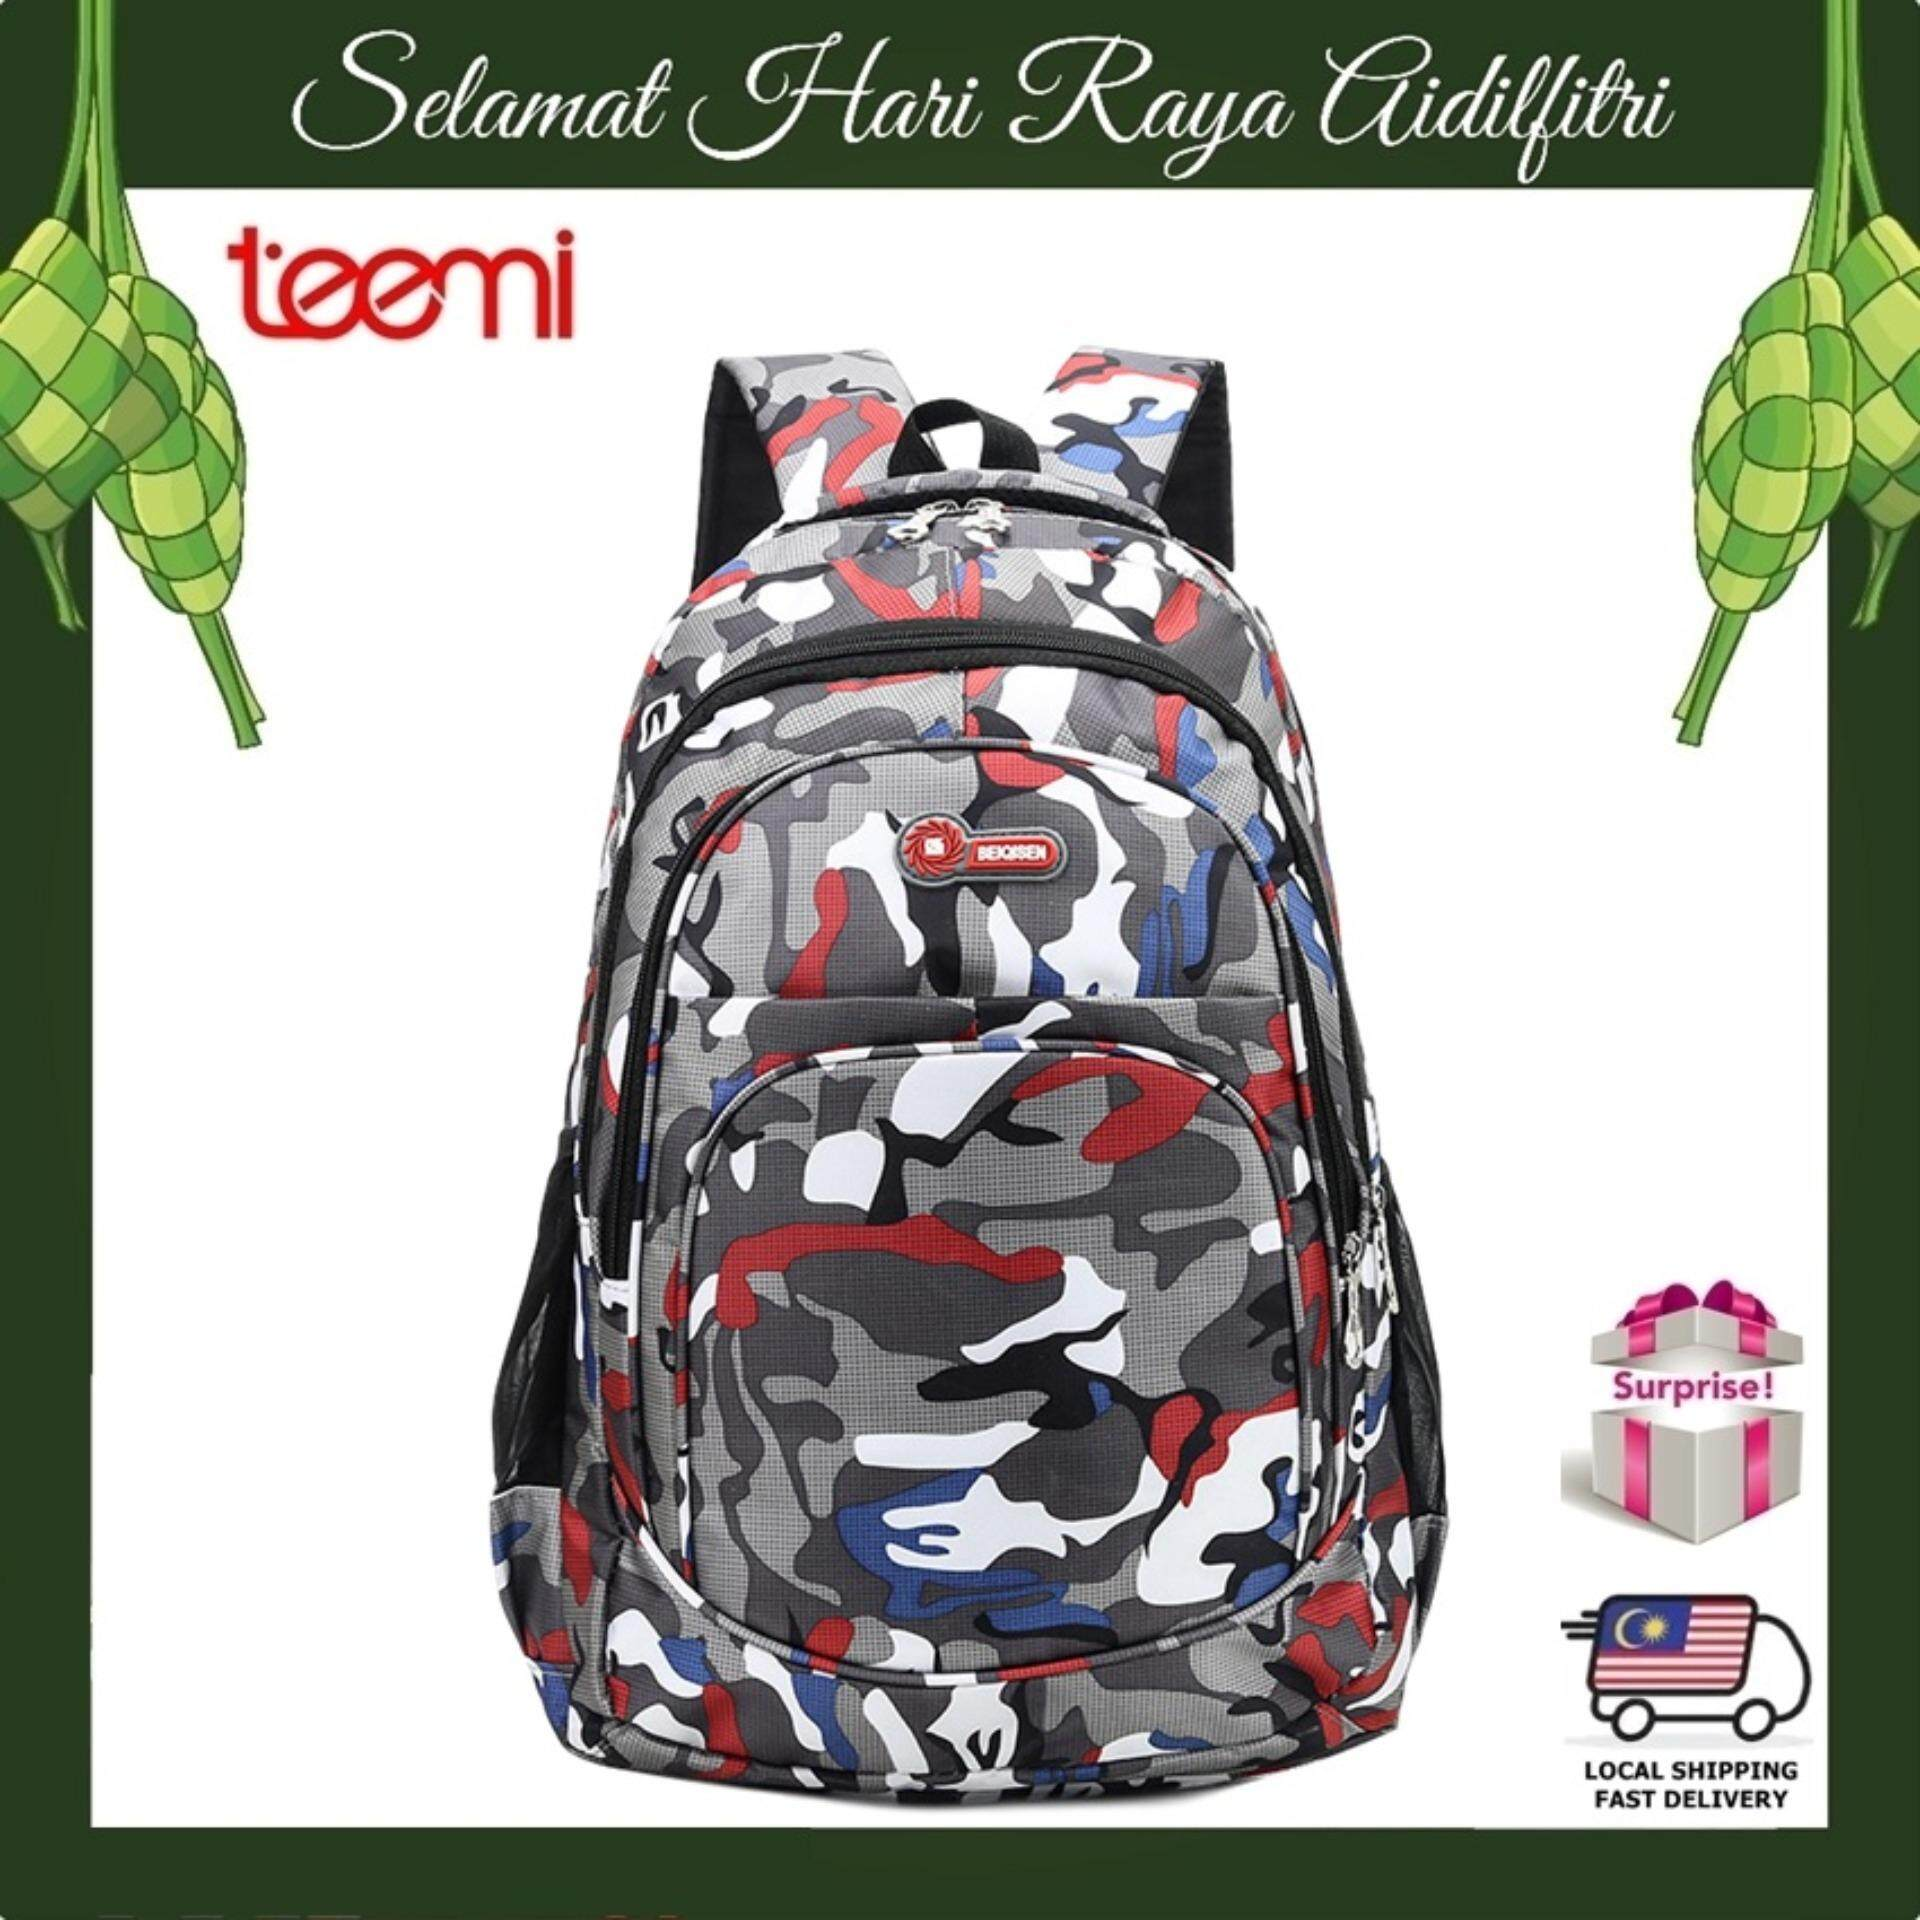 TEEMI Unisex Backpack Modern Army Camouflage Forest Stripe Printing Water Resistant Nylon Sports Laptop Travel Outdoor Leisure Teenager College Bag - Red